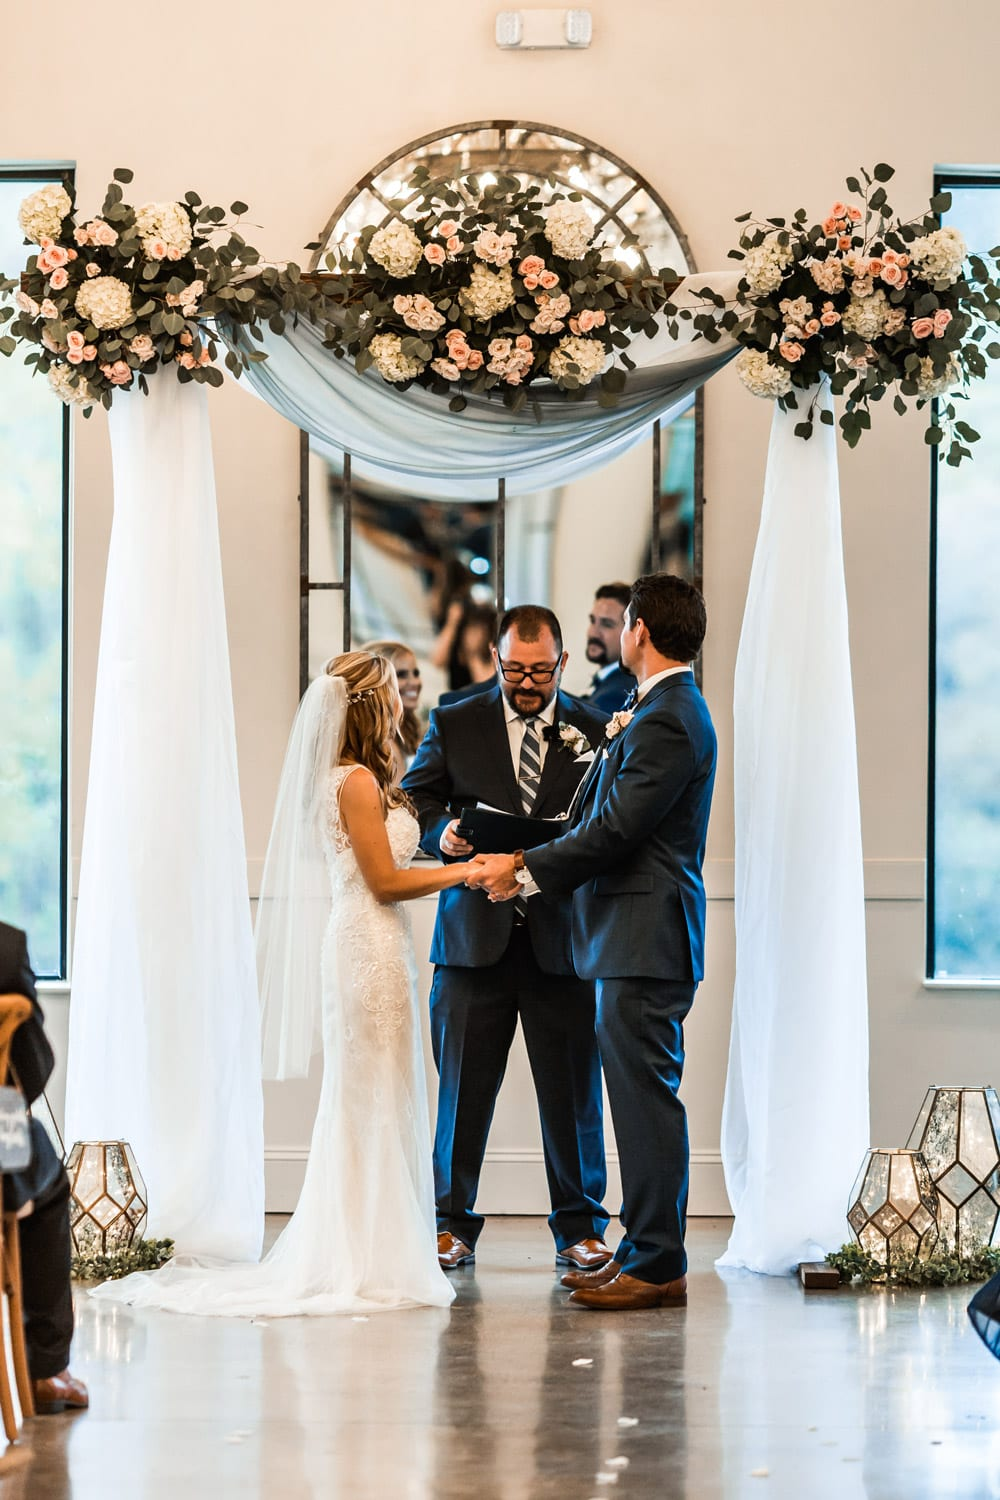 Bride and groom hold hands during indoor ceremony